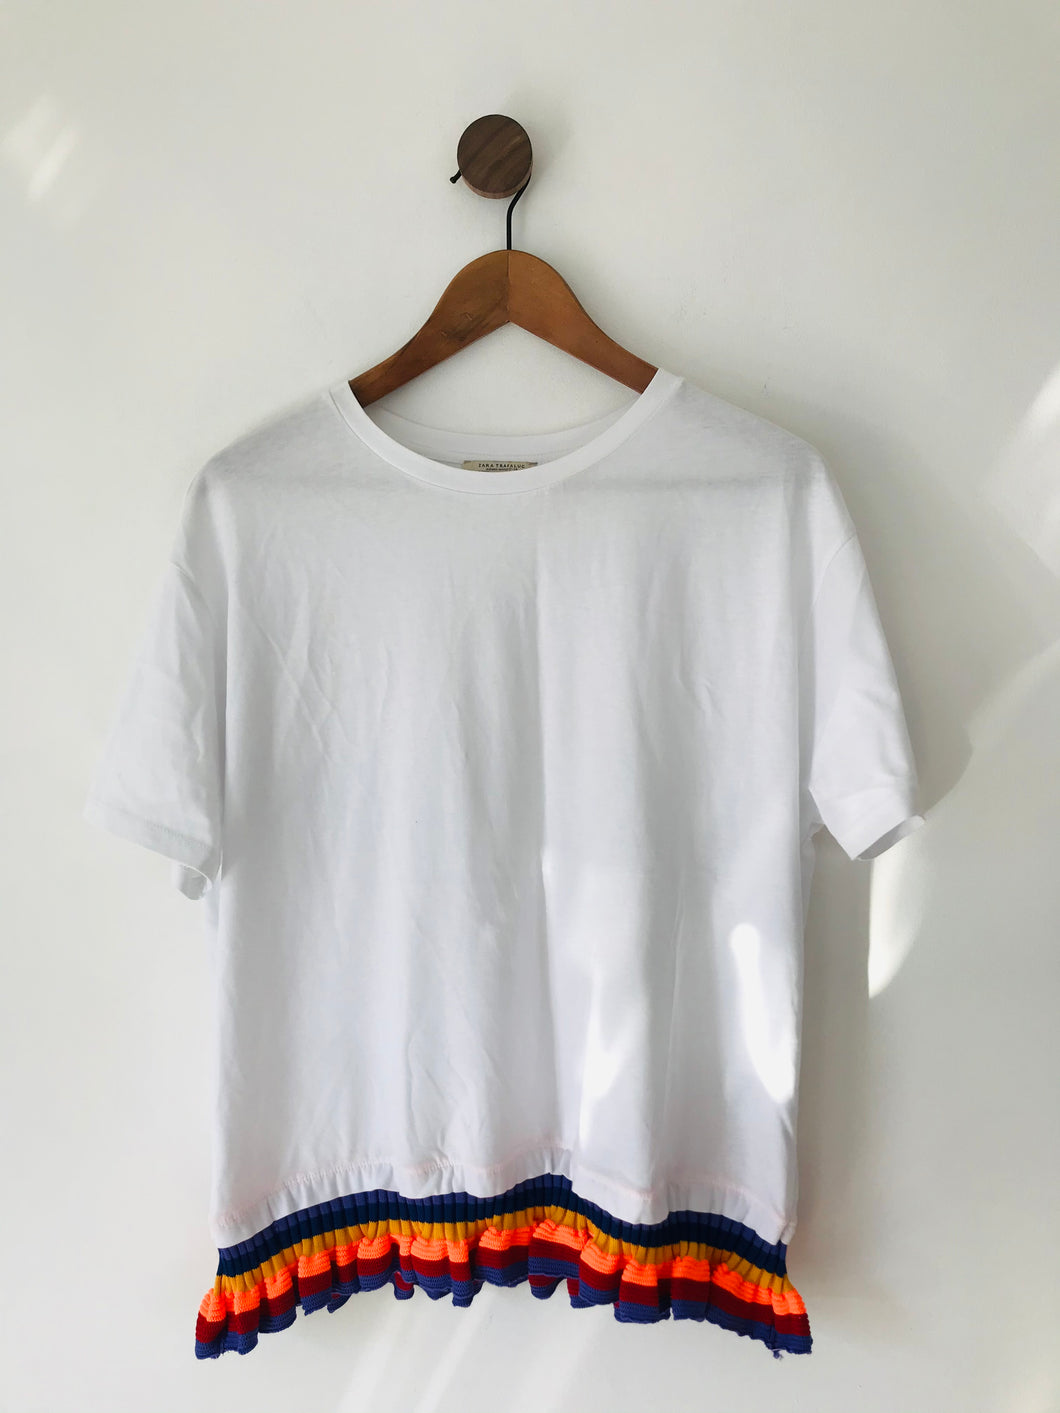 Zara Women's Rainbow Knit Frill Hem T-Shirt | M UK10-12 | White